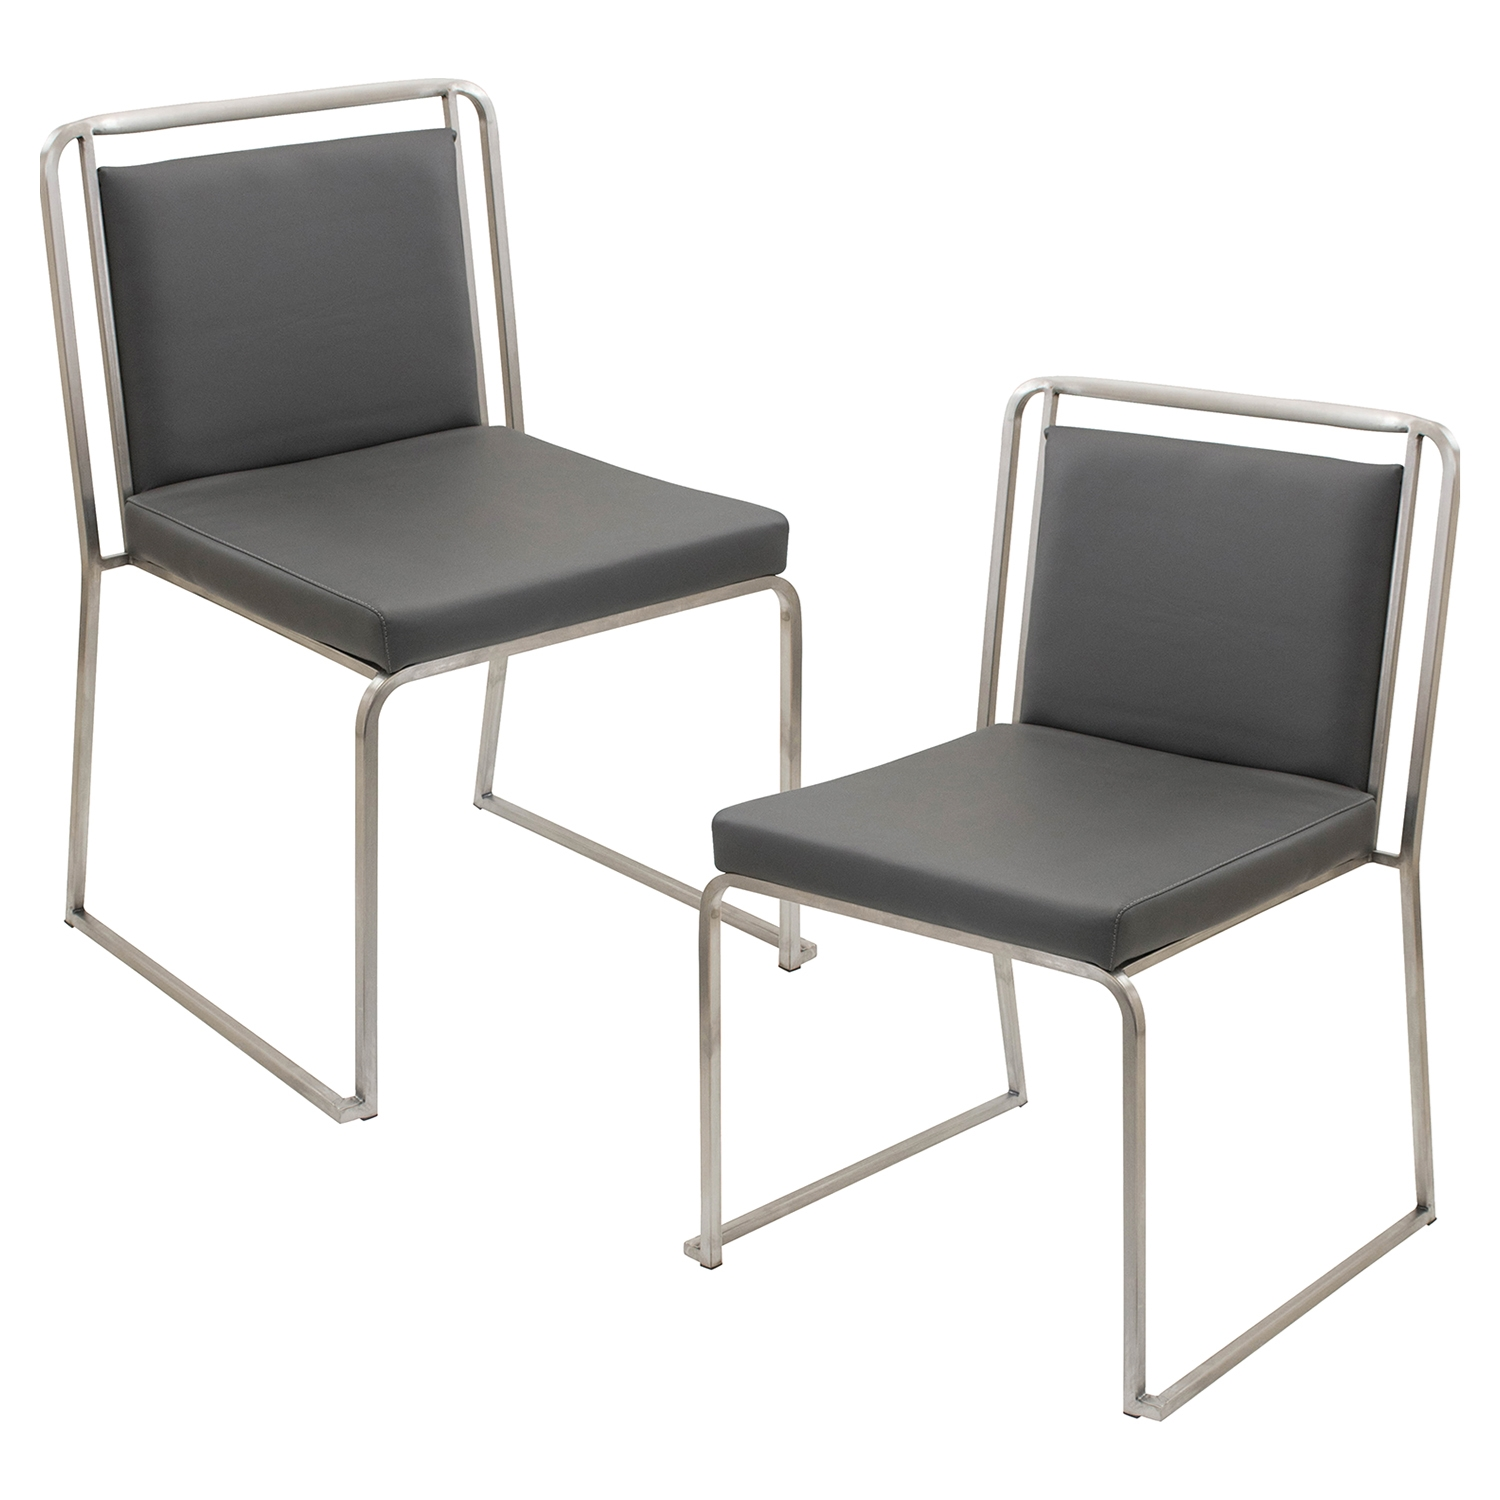 Cascade Stackable Dining Chair - Gray (Set of 2)